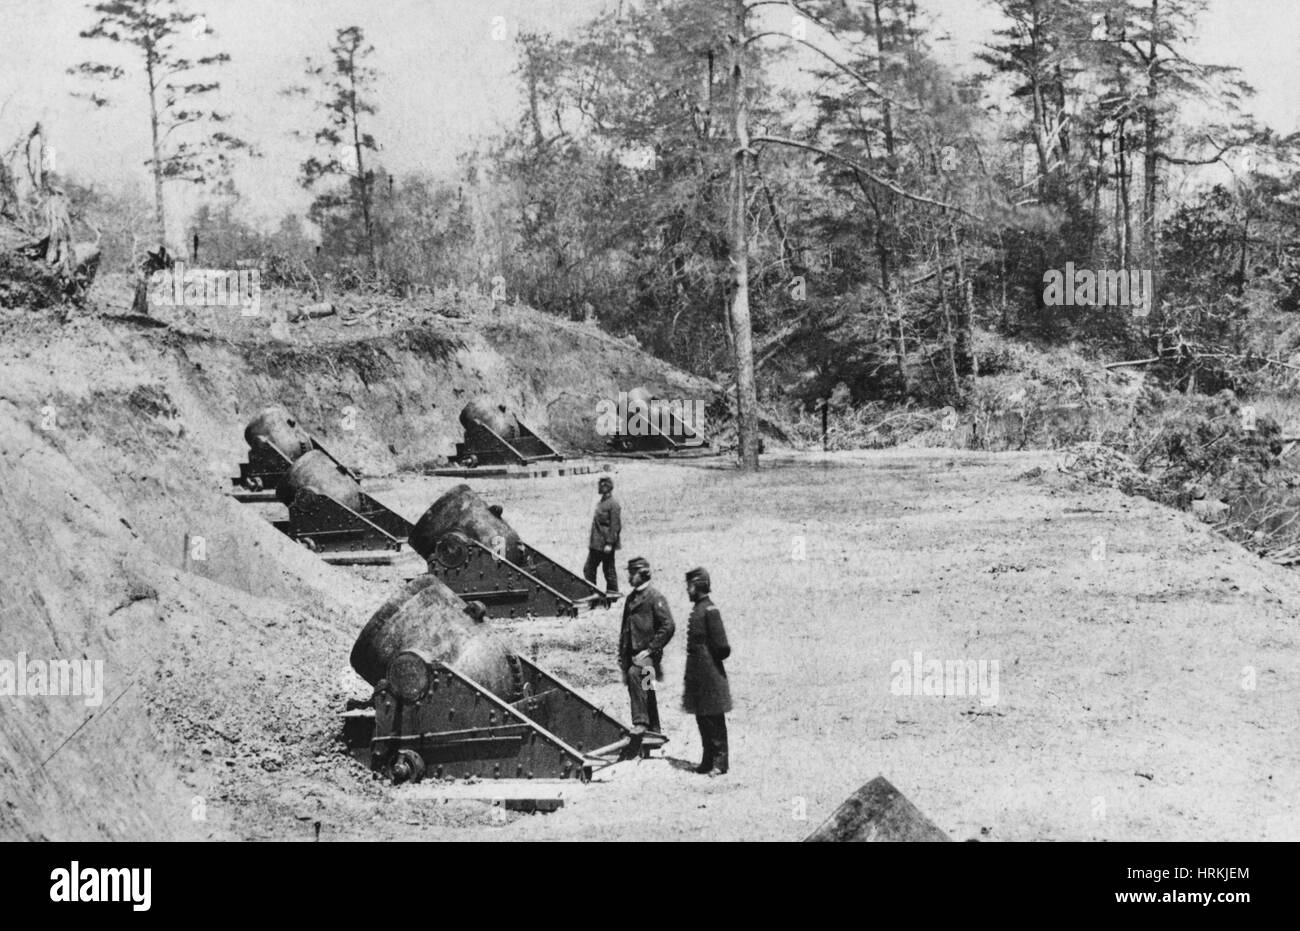 Civil War Mortar Battery - Stock Image